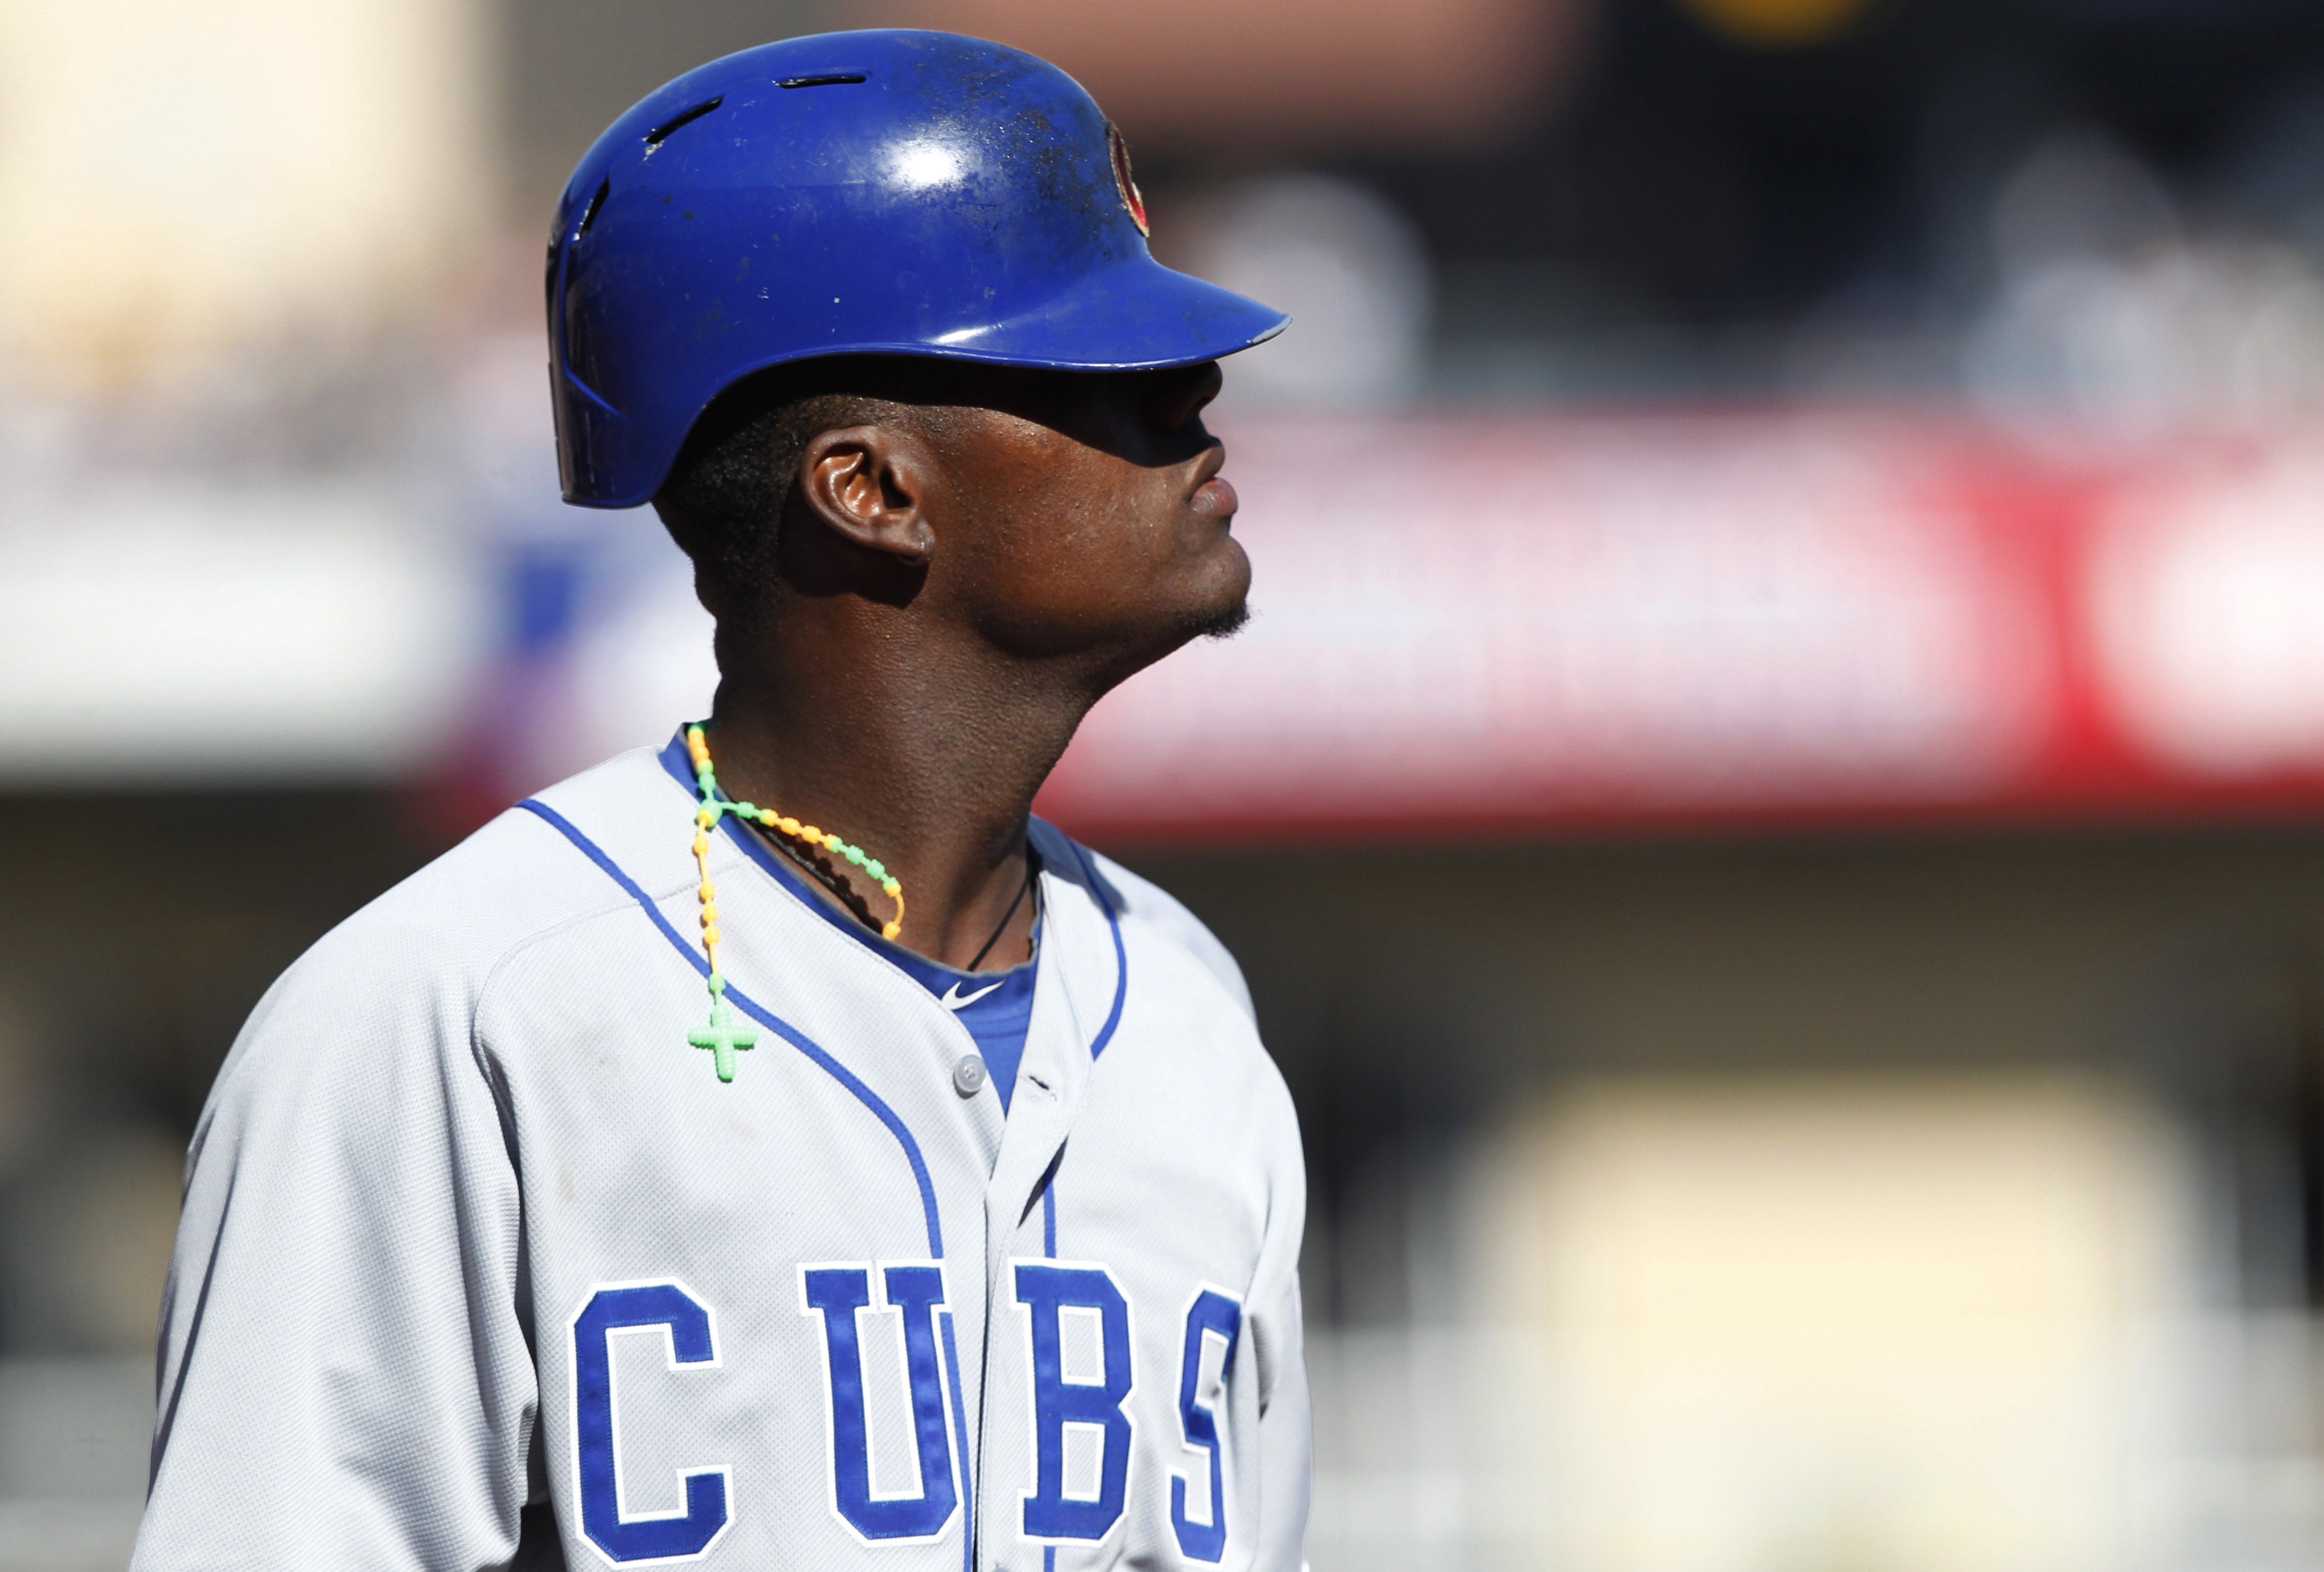 Cubs outfielder Junior Lake plays a whole inning in the wrong j…